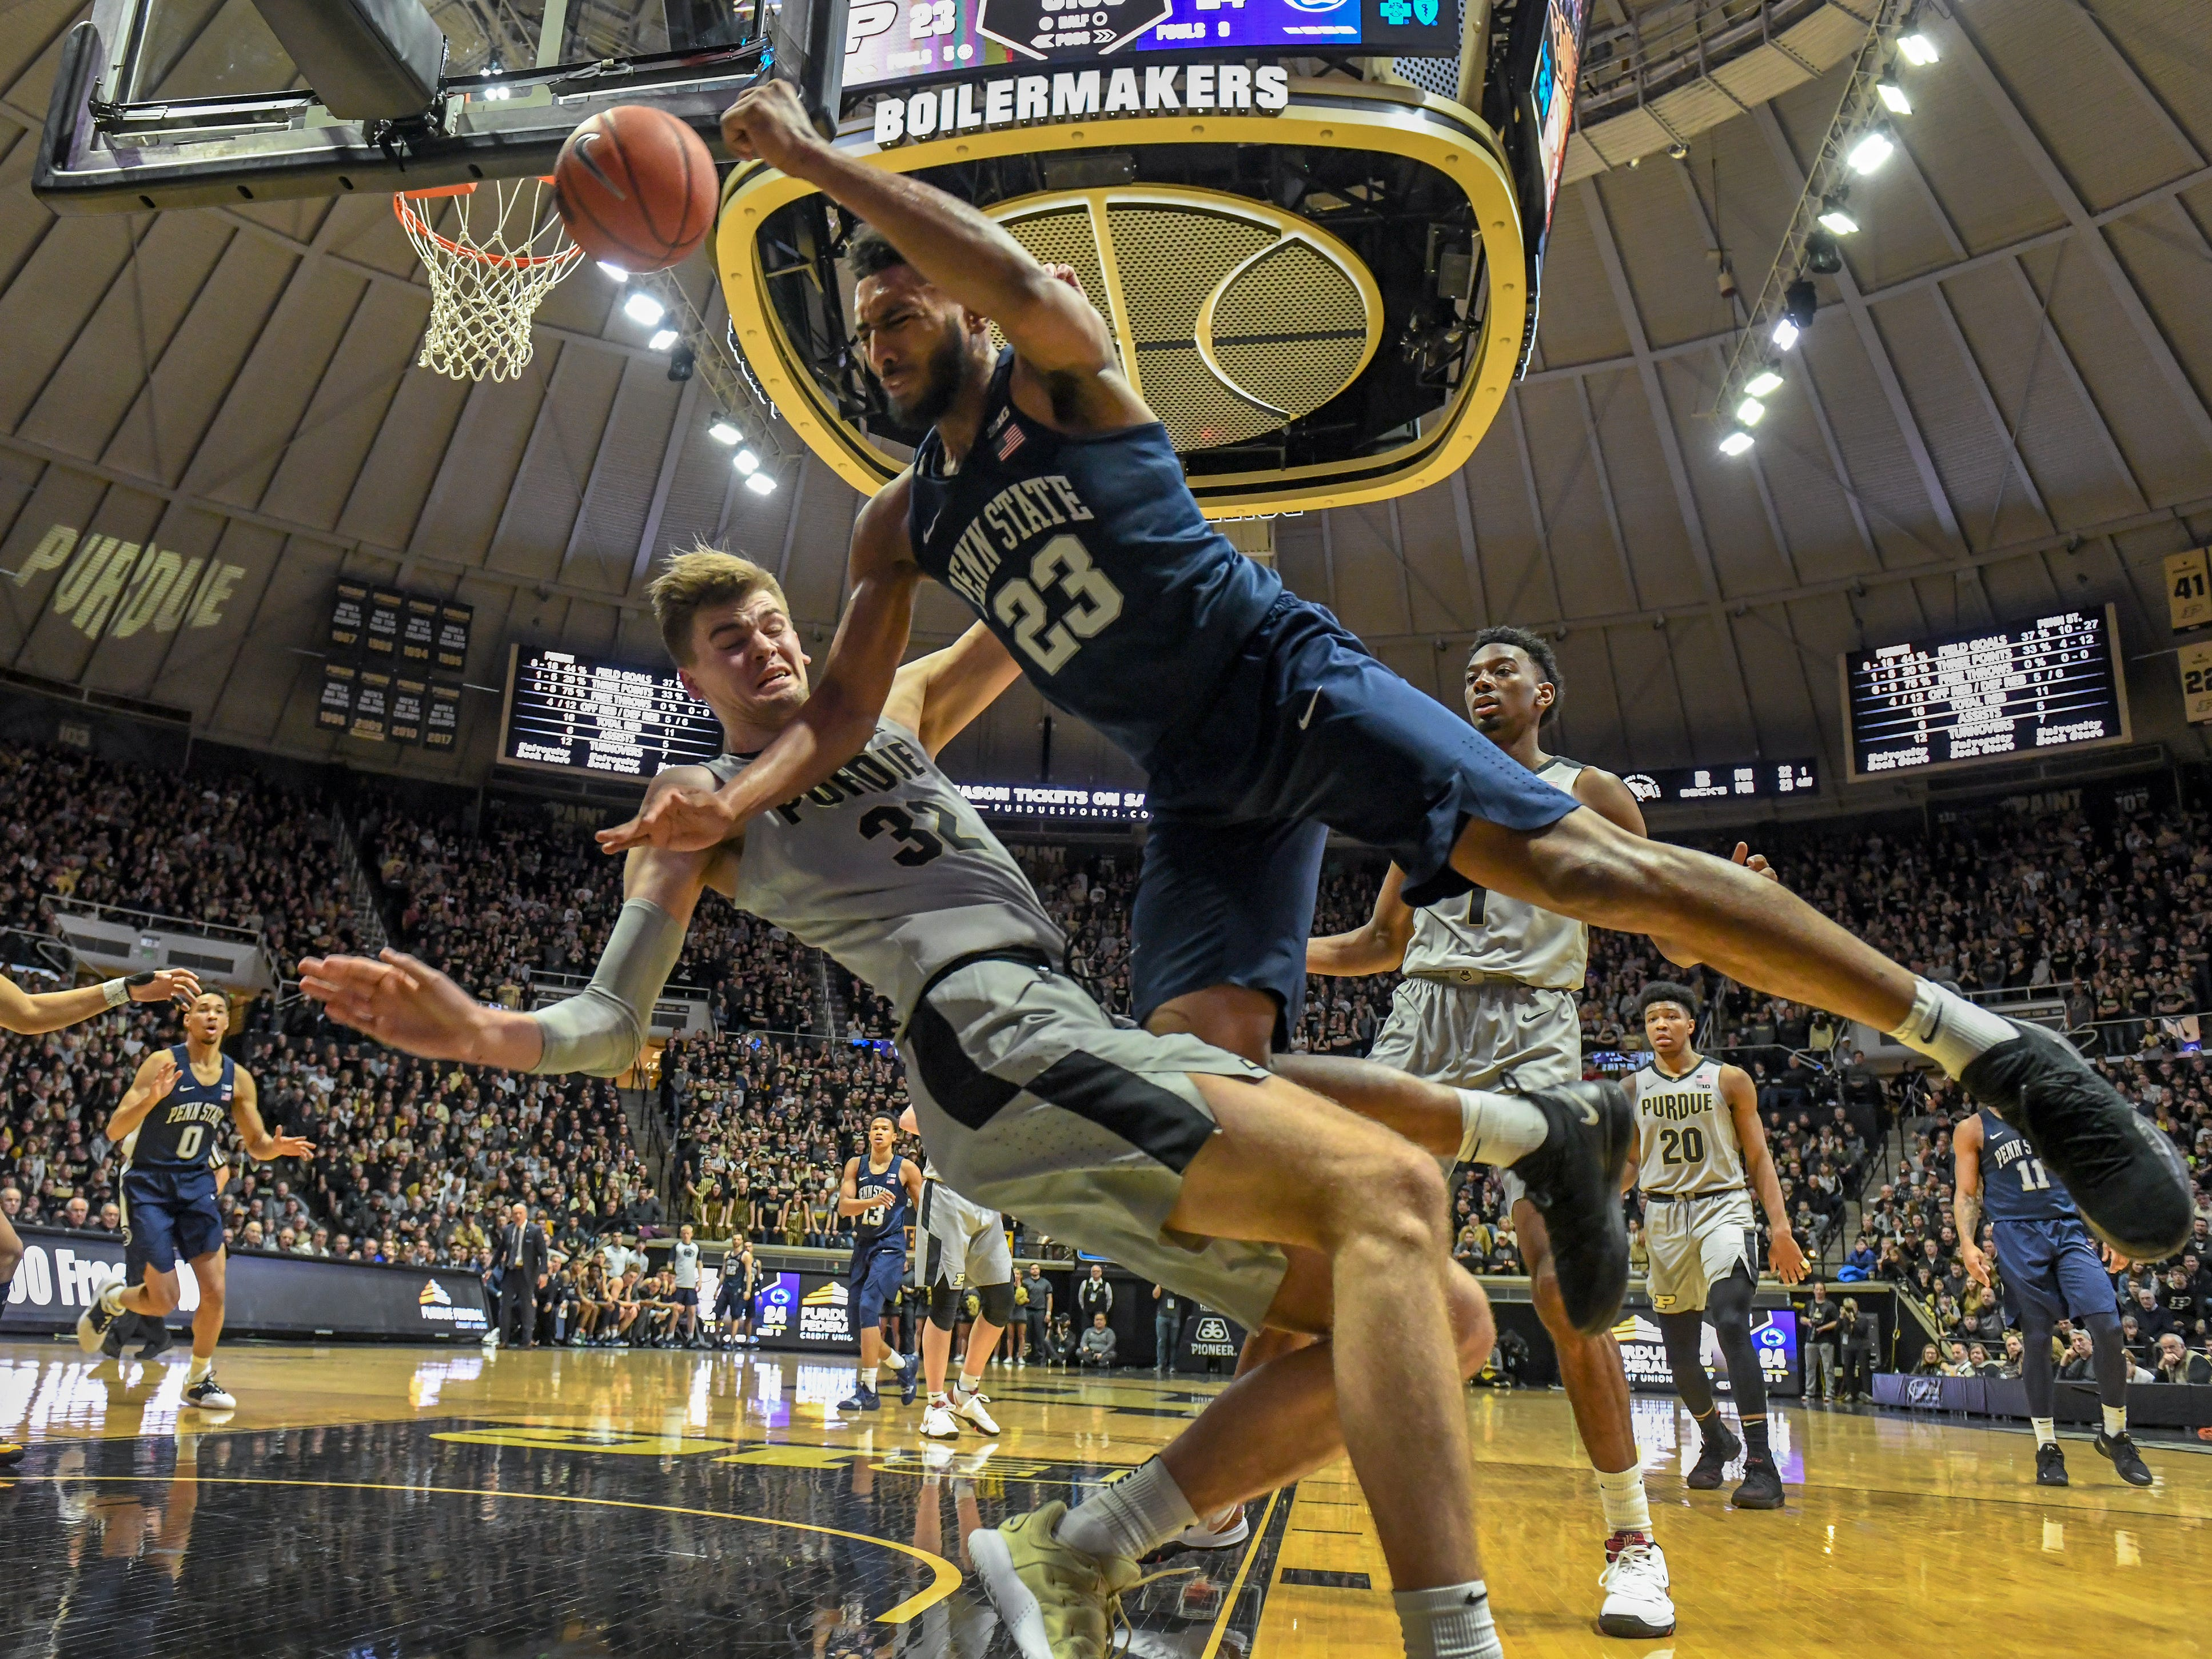 Purdue's Matt Haarms takes a charge as Penn State's Josh Reaves drives the baseline in the first half at Purdue on Saturday February 16, 2019.